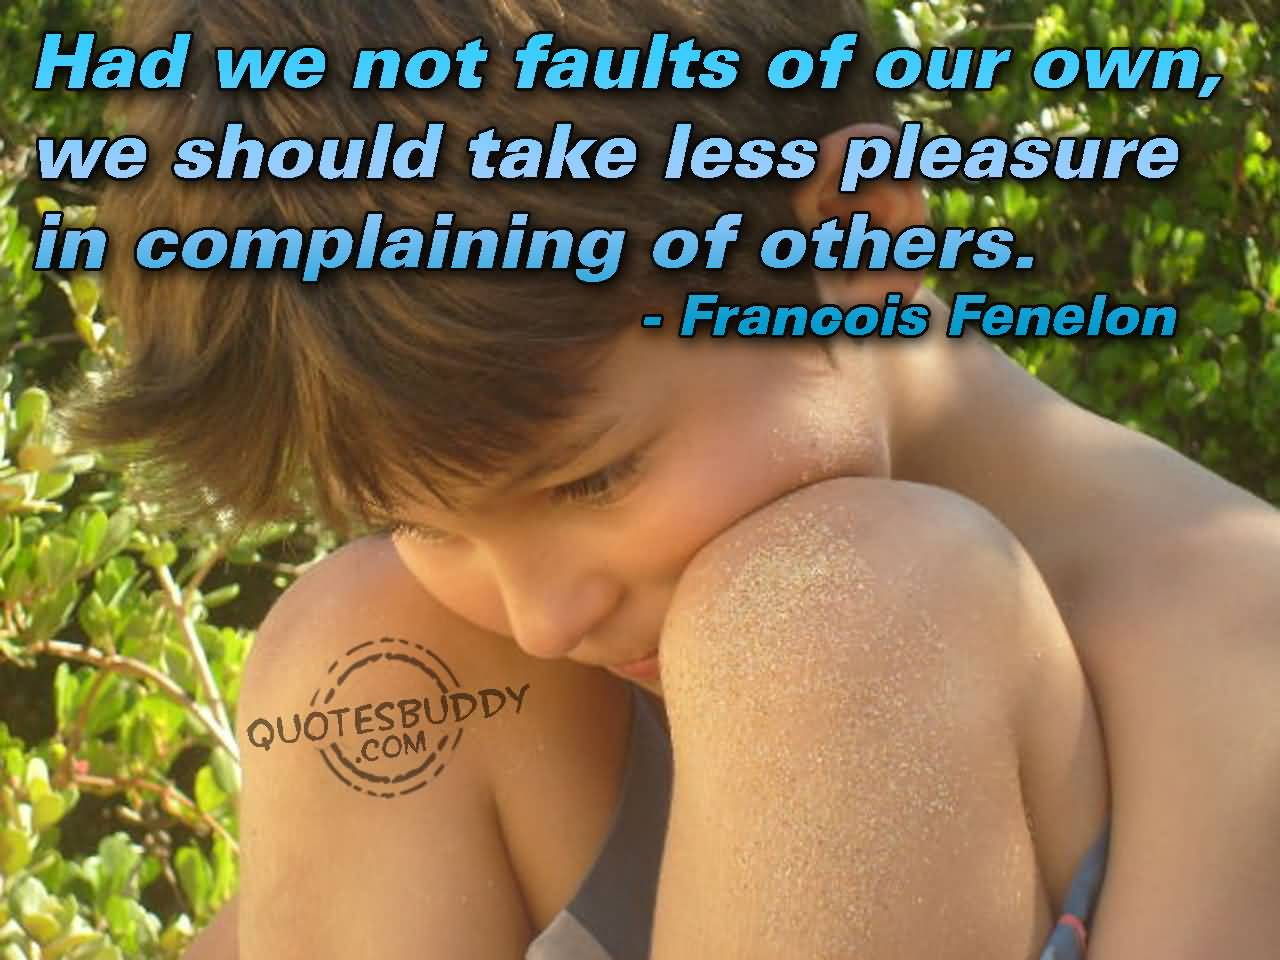 Had We Not Faults Of Our Own We Should Take Less Pleasure In Complaining Of Others - Francois Fenelon